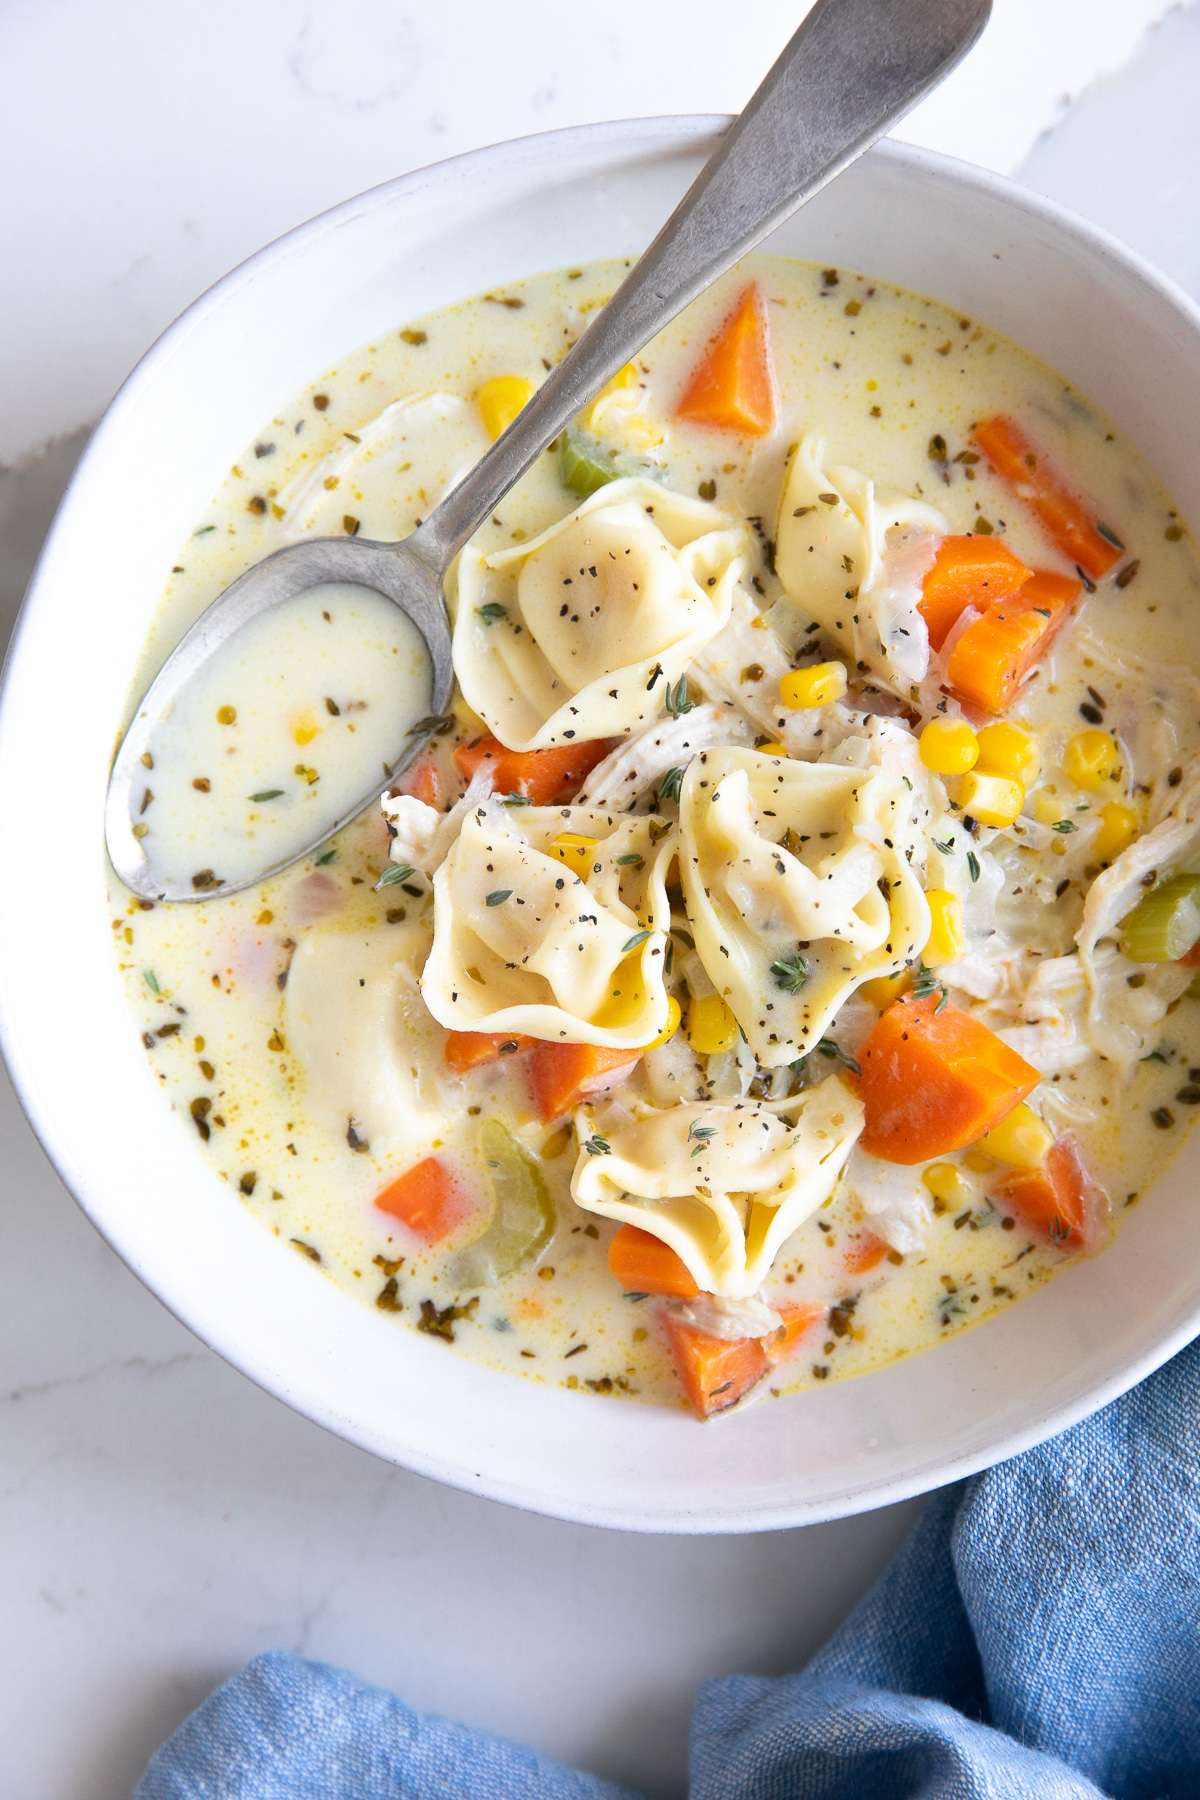 Image of a white bowl with a blue napkin filled with creamy chicken tortellini soup and garnished with fresh thyme.